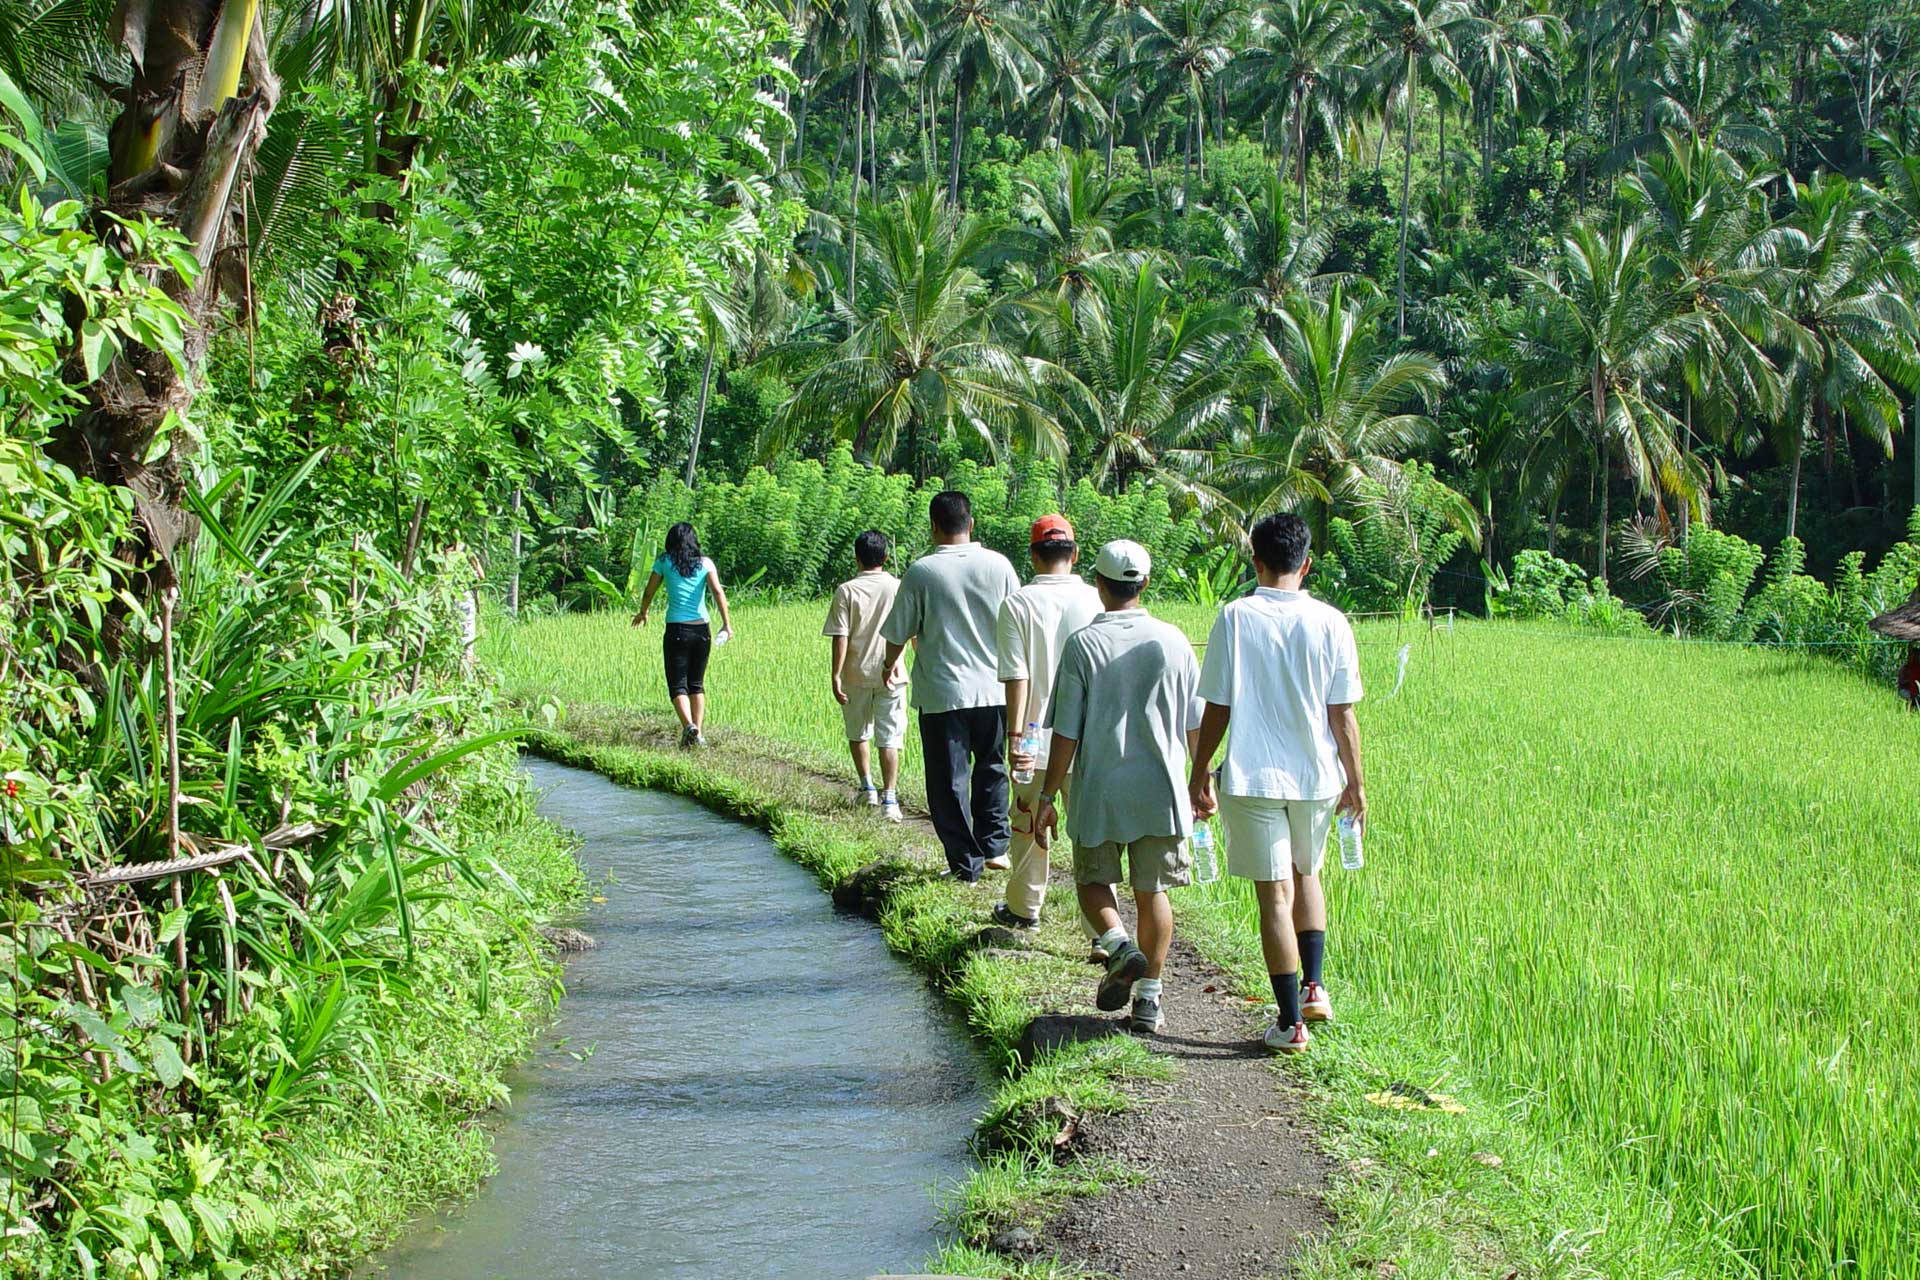 Group of tourists trekking next to a ricefield